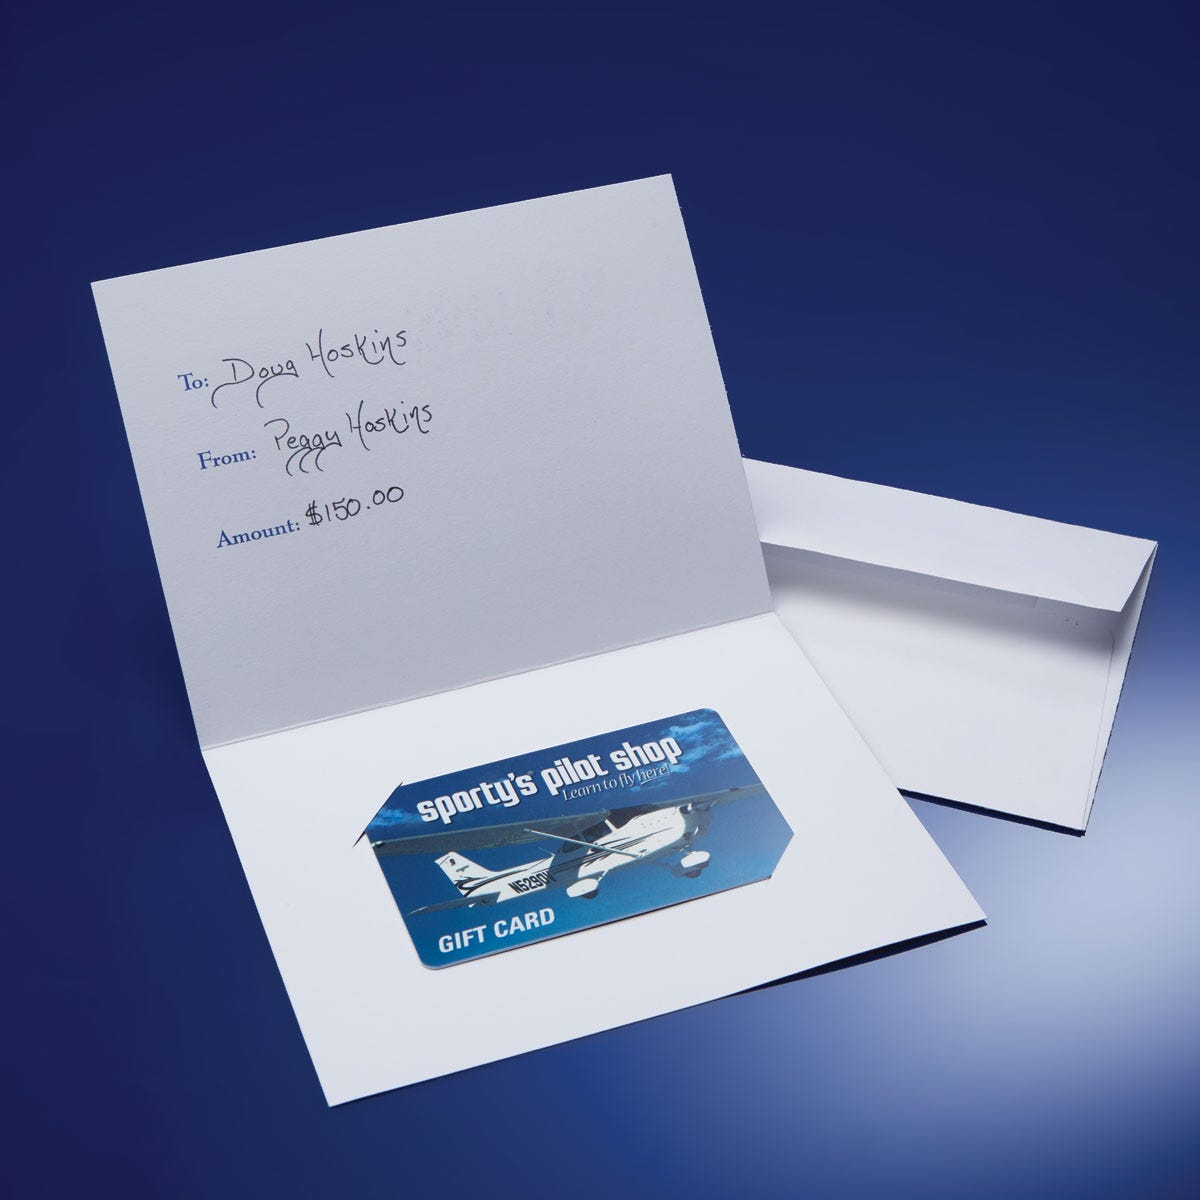 Gift cardgift certificate from sportys pilot shop more photos negle Image collections